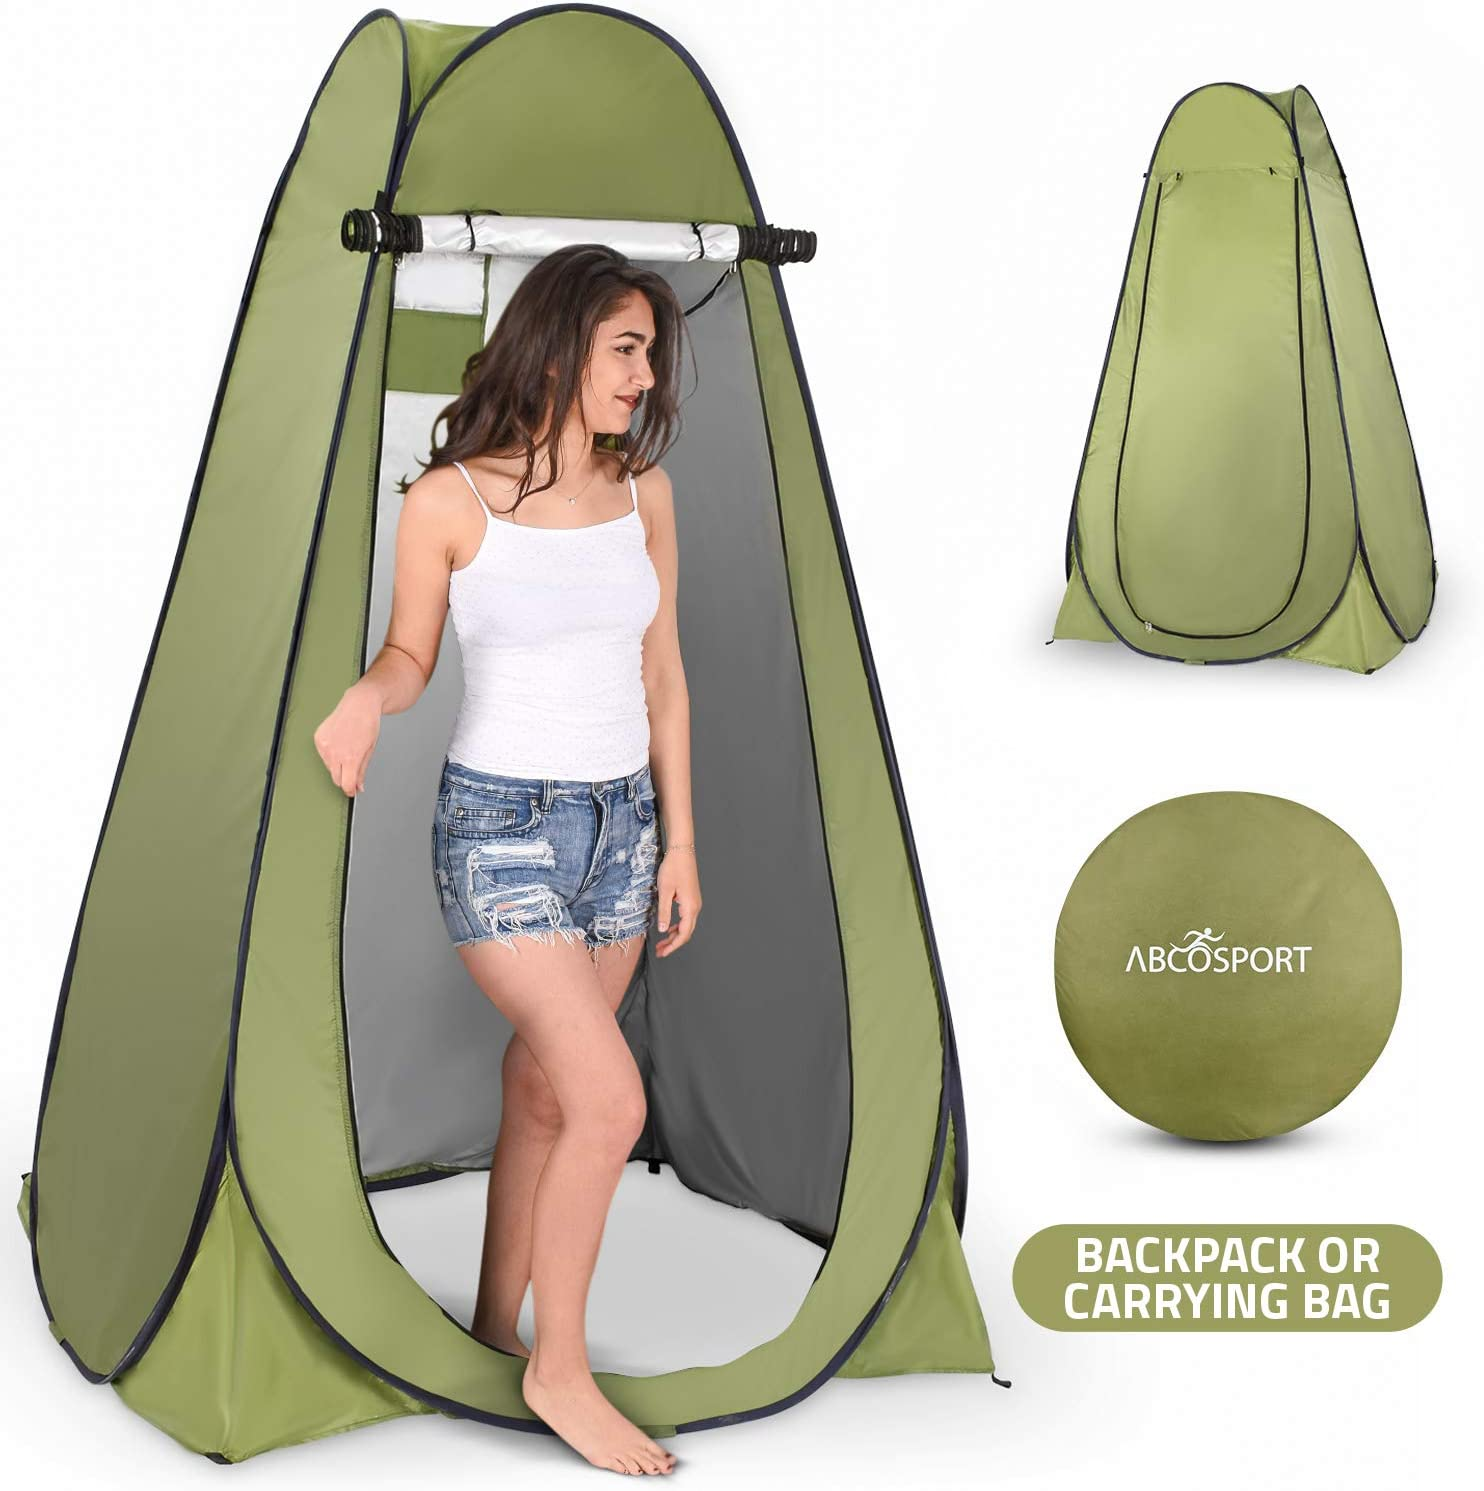 Insta Shelter for Porta Potty Toilets or/ Showers Outdoor Toilet PopUp Privacy Tent for Portable Toilet for Camping Outdoor Shower Tent Camp Site Bathroom Restroom Enclosure Changing Pod